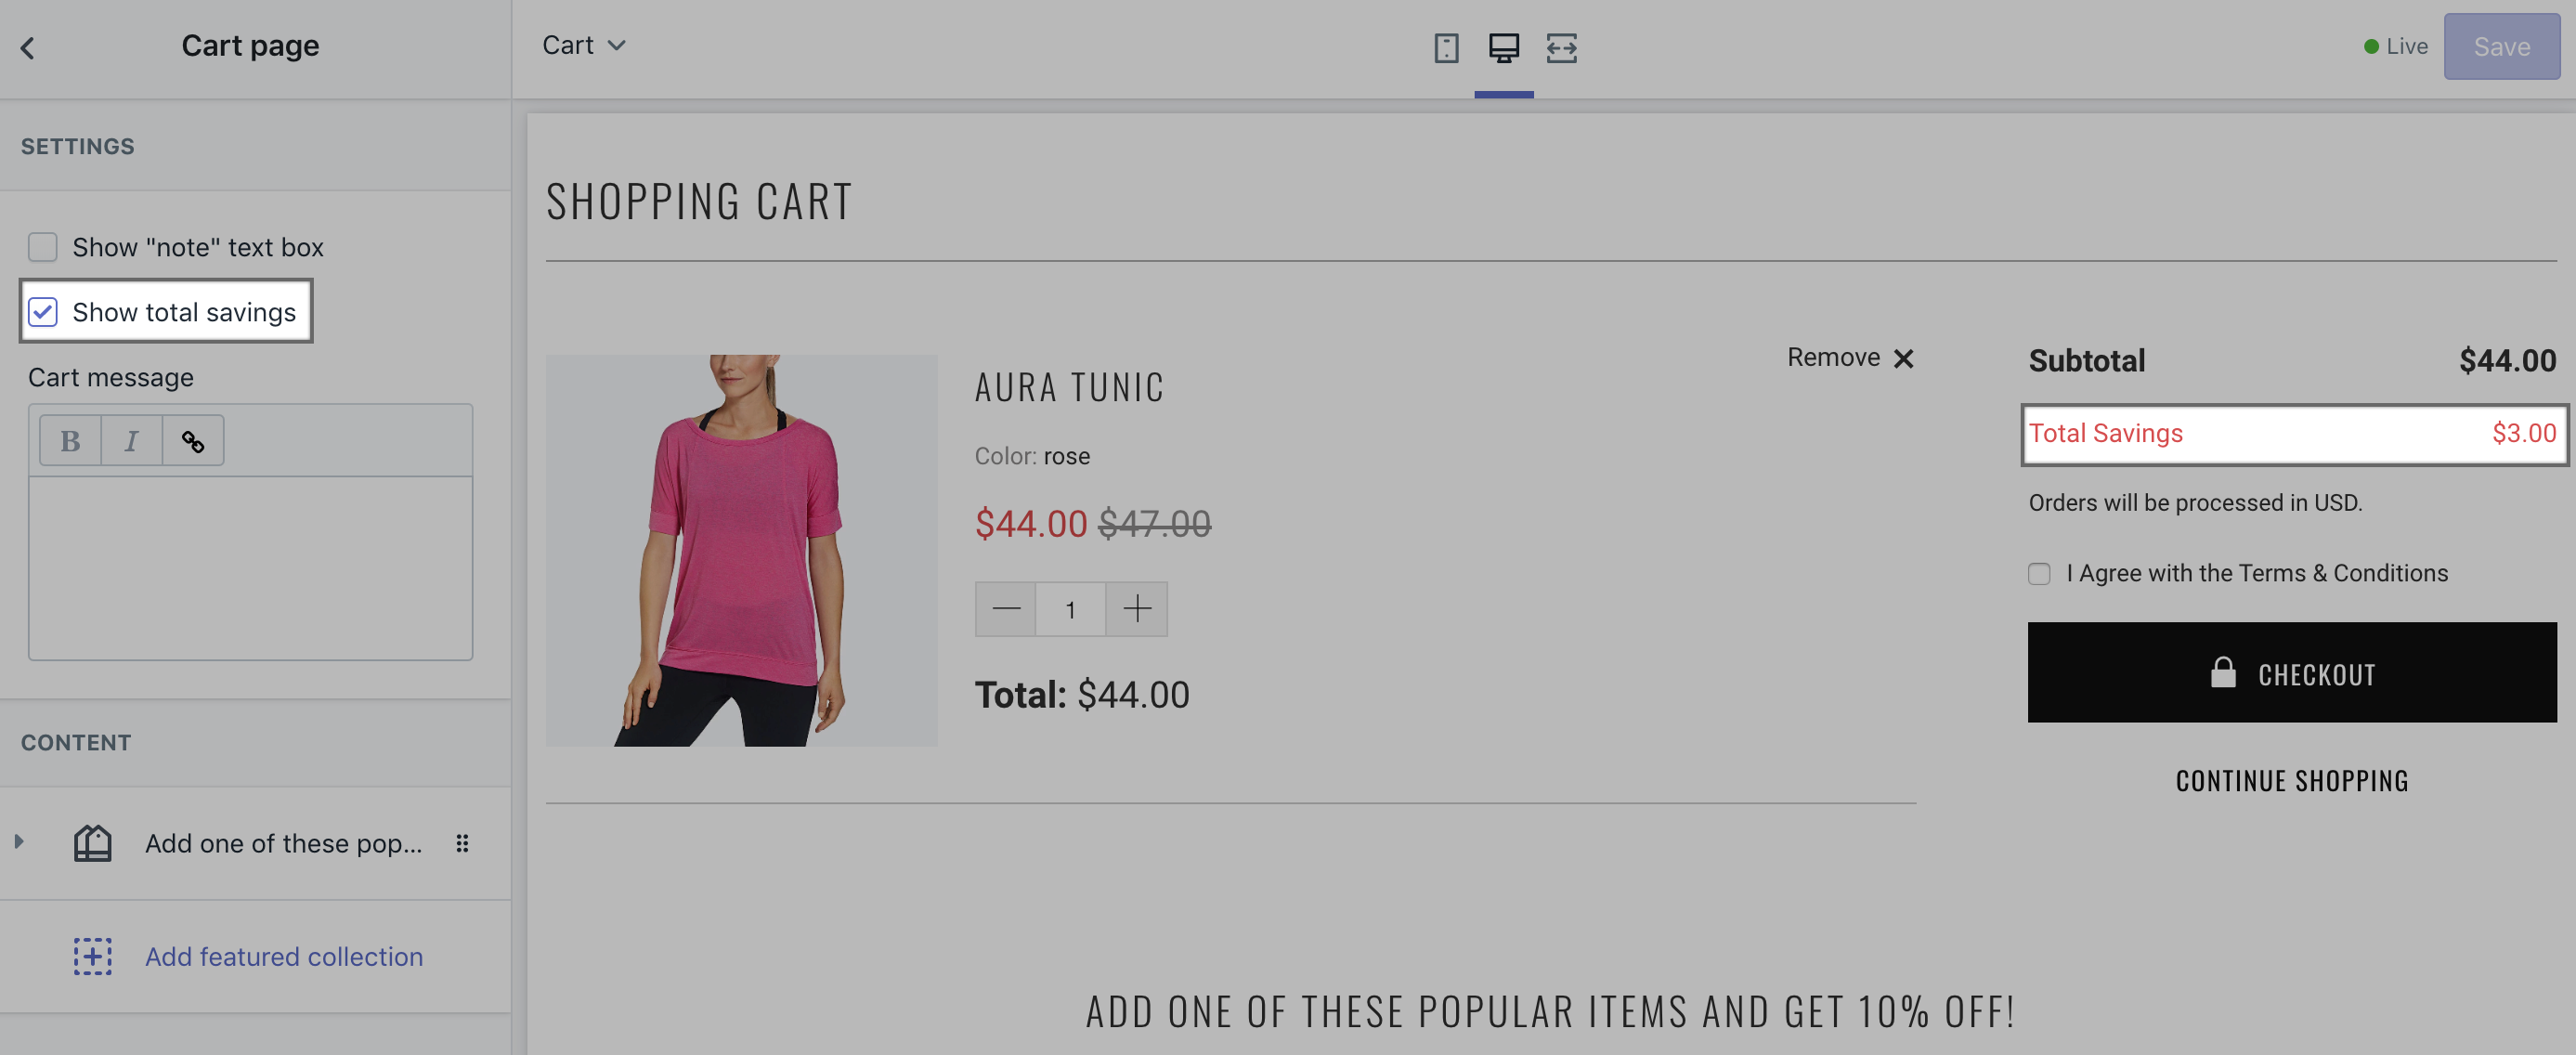 cart-page-enable-total-savings.png